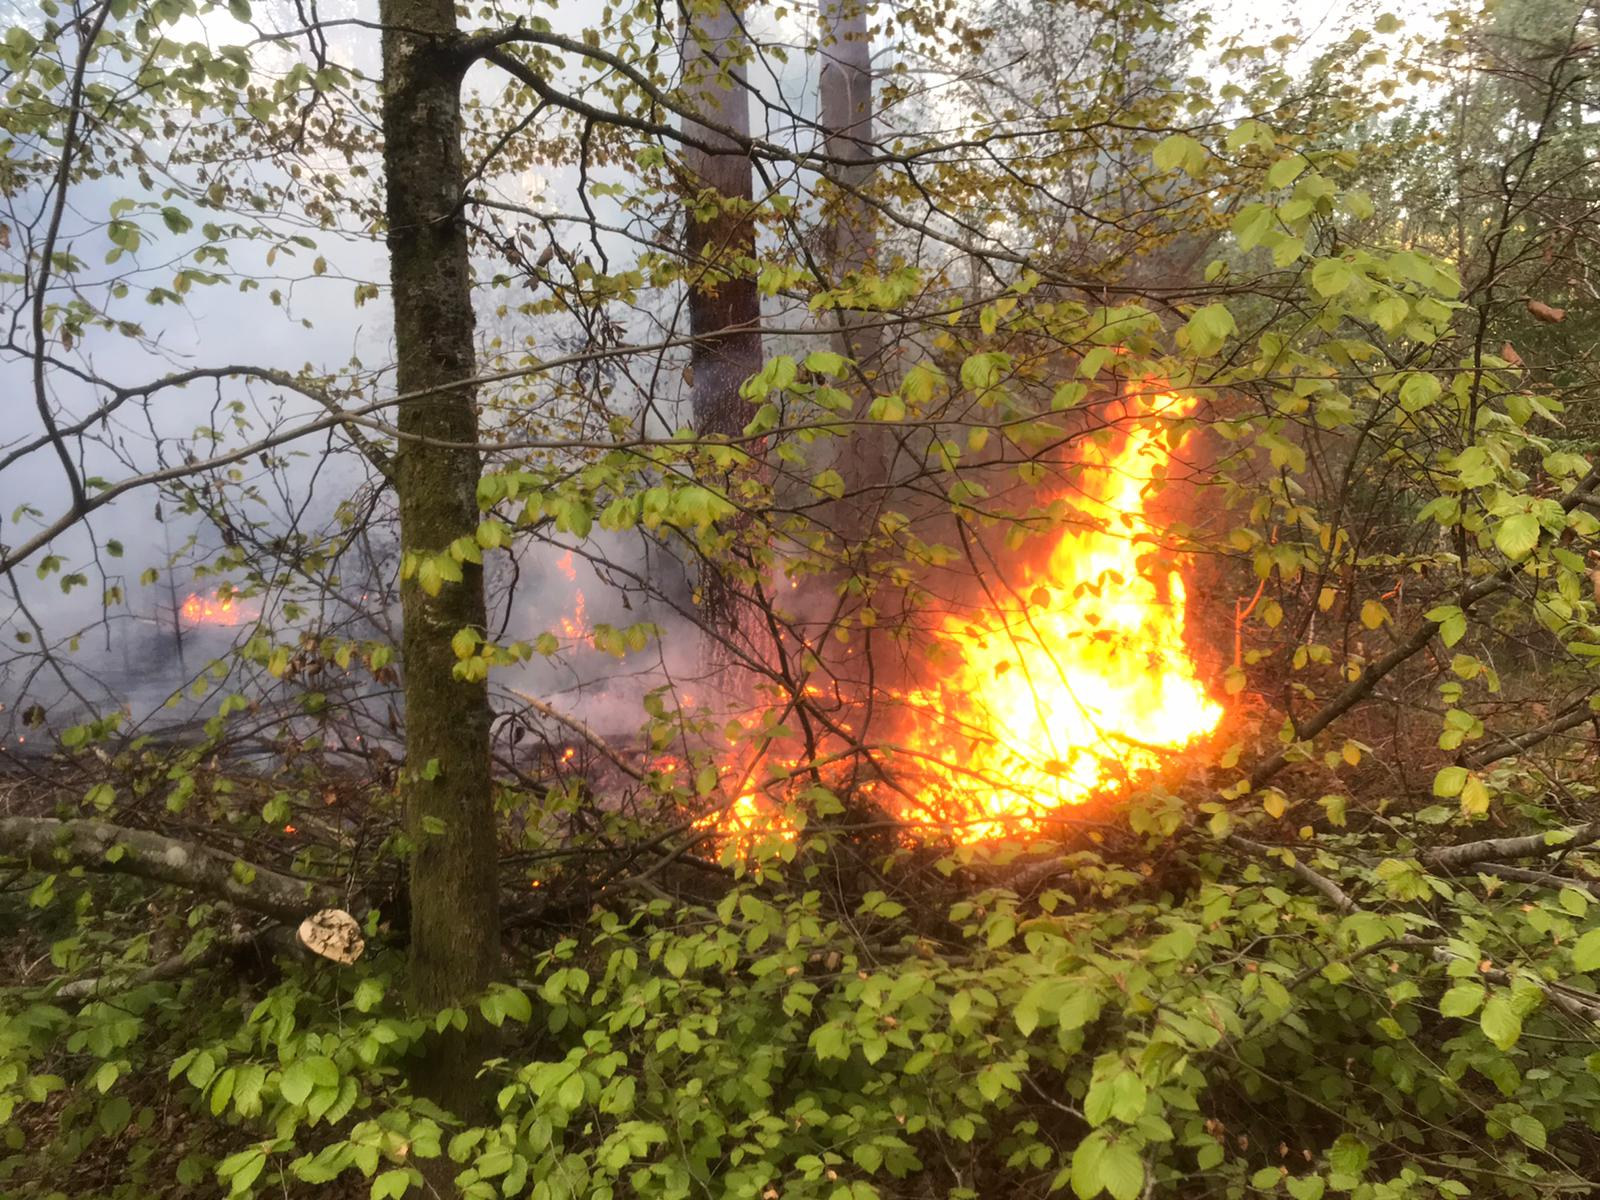 Waldbrand in Lörrach-Hauingen